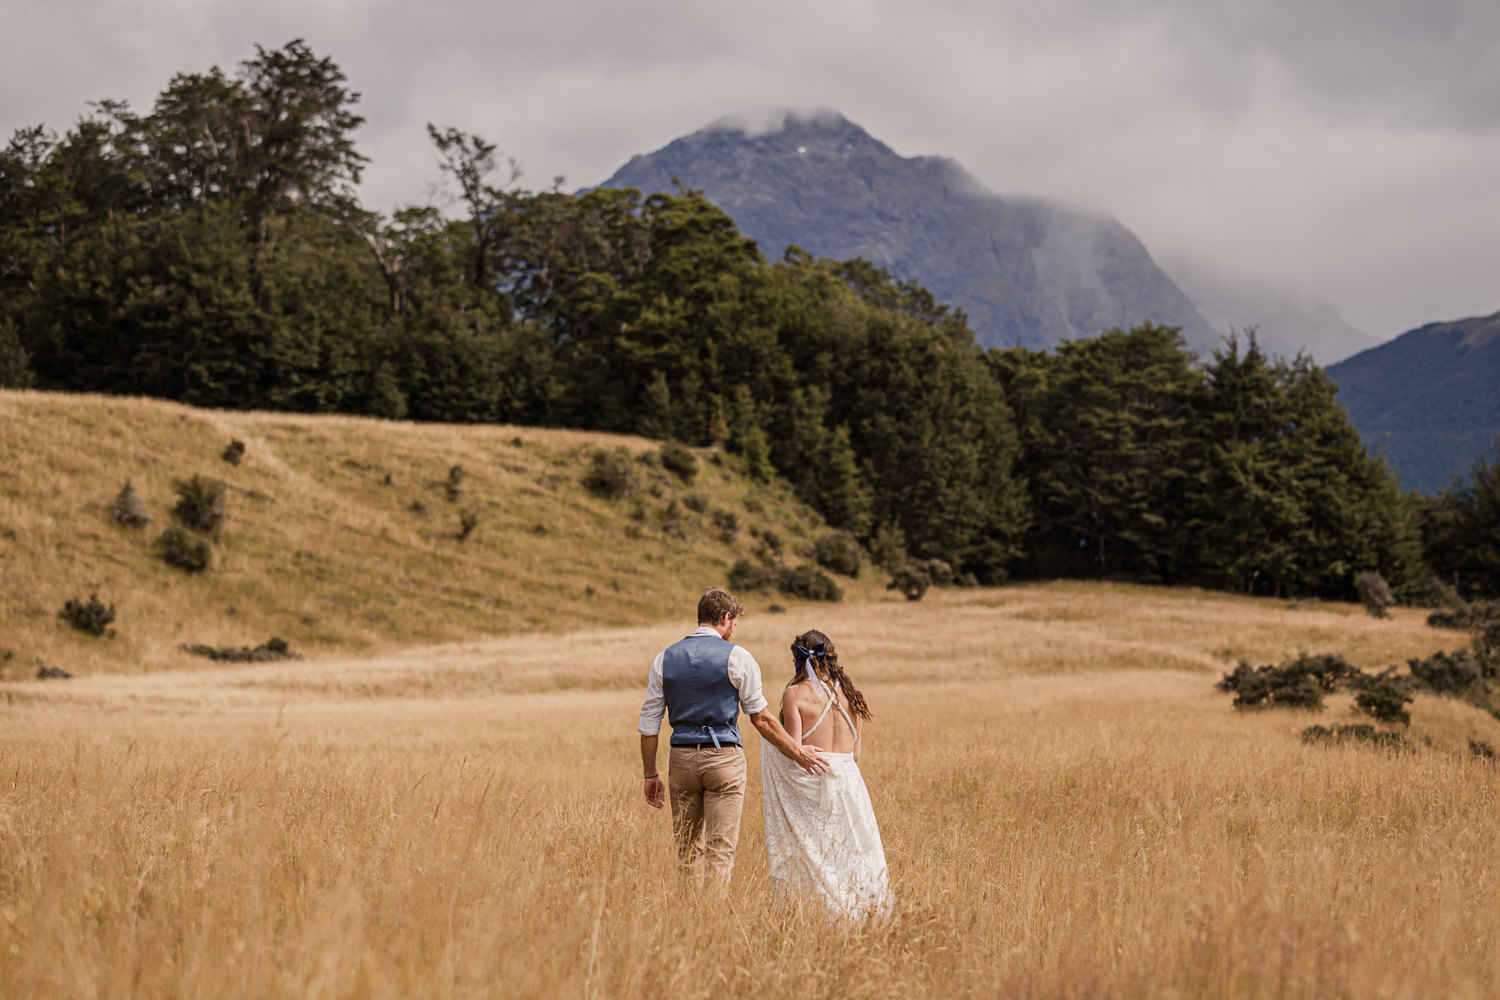 jay-tanya-wedding-queenstown-13.JPG